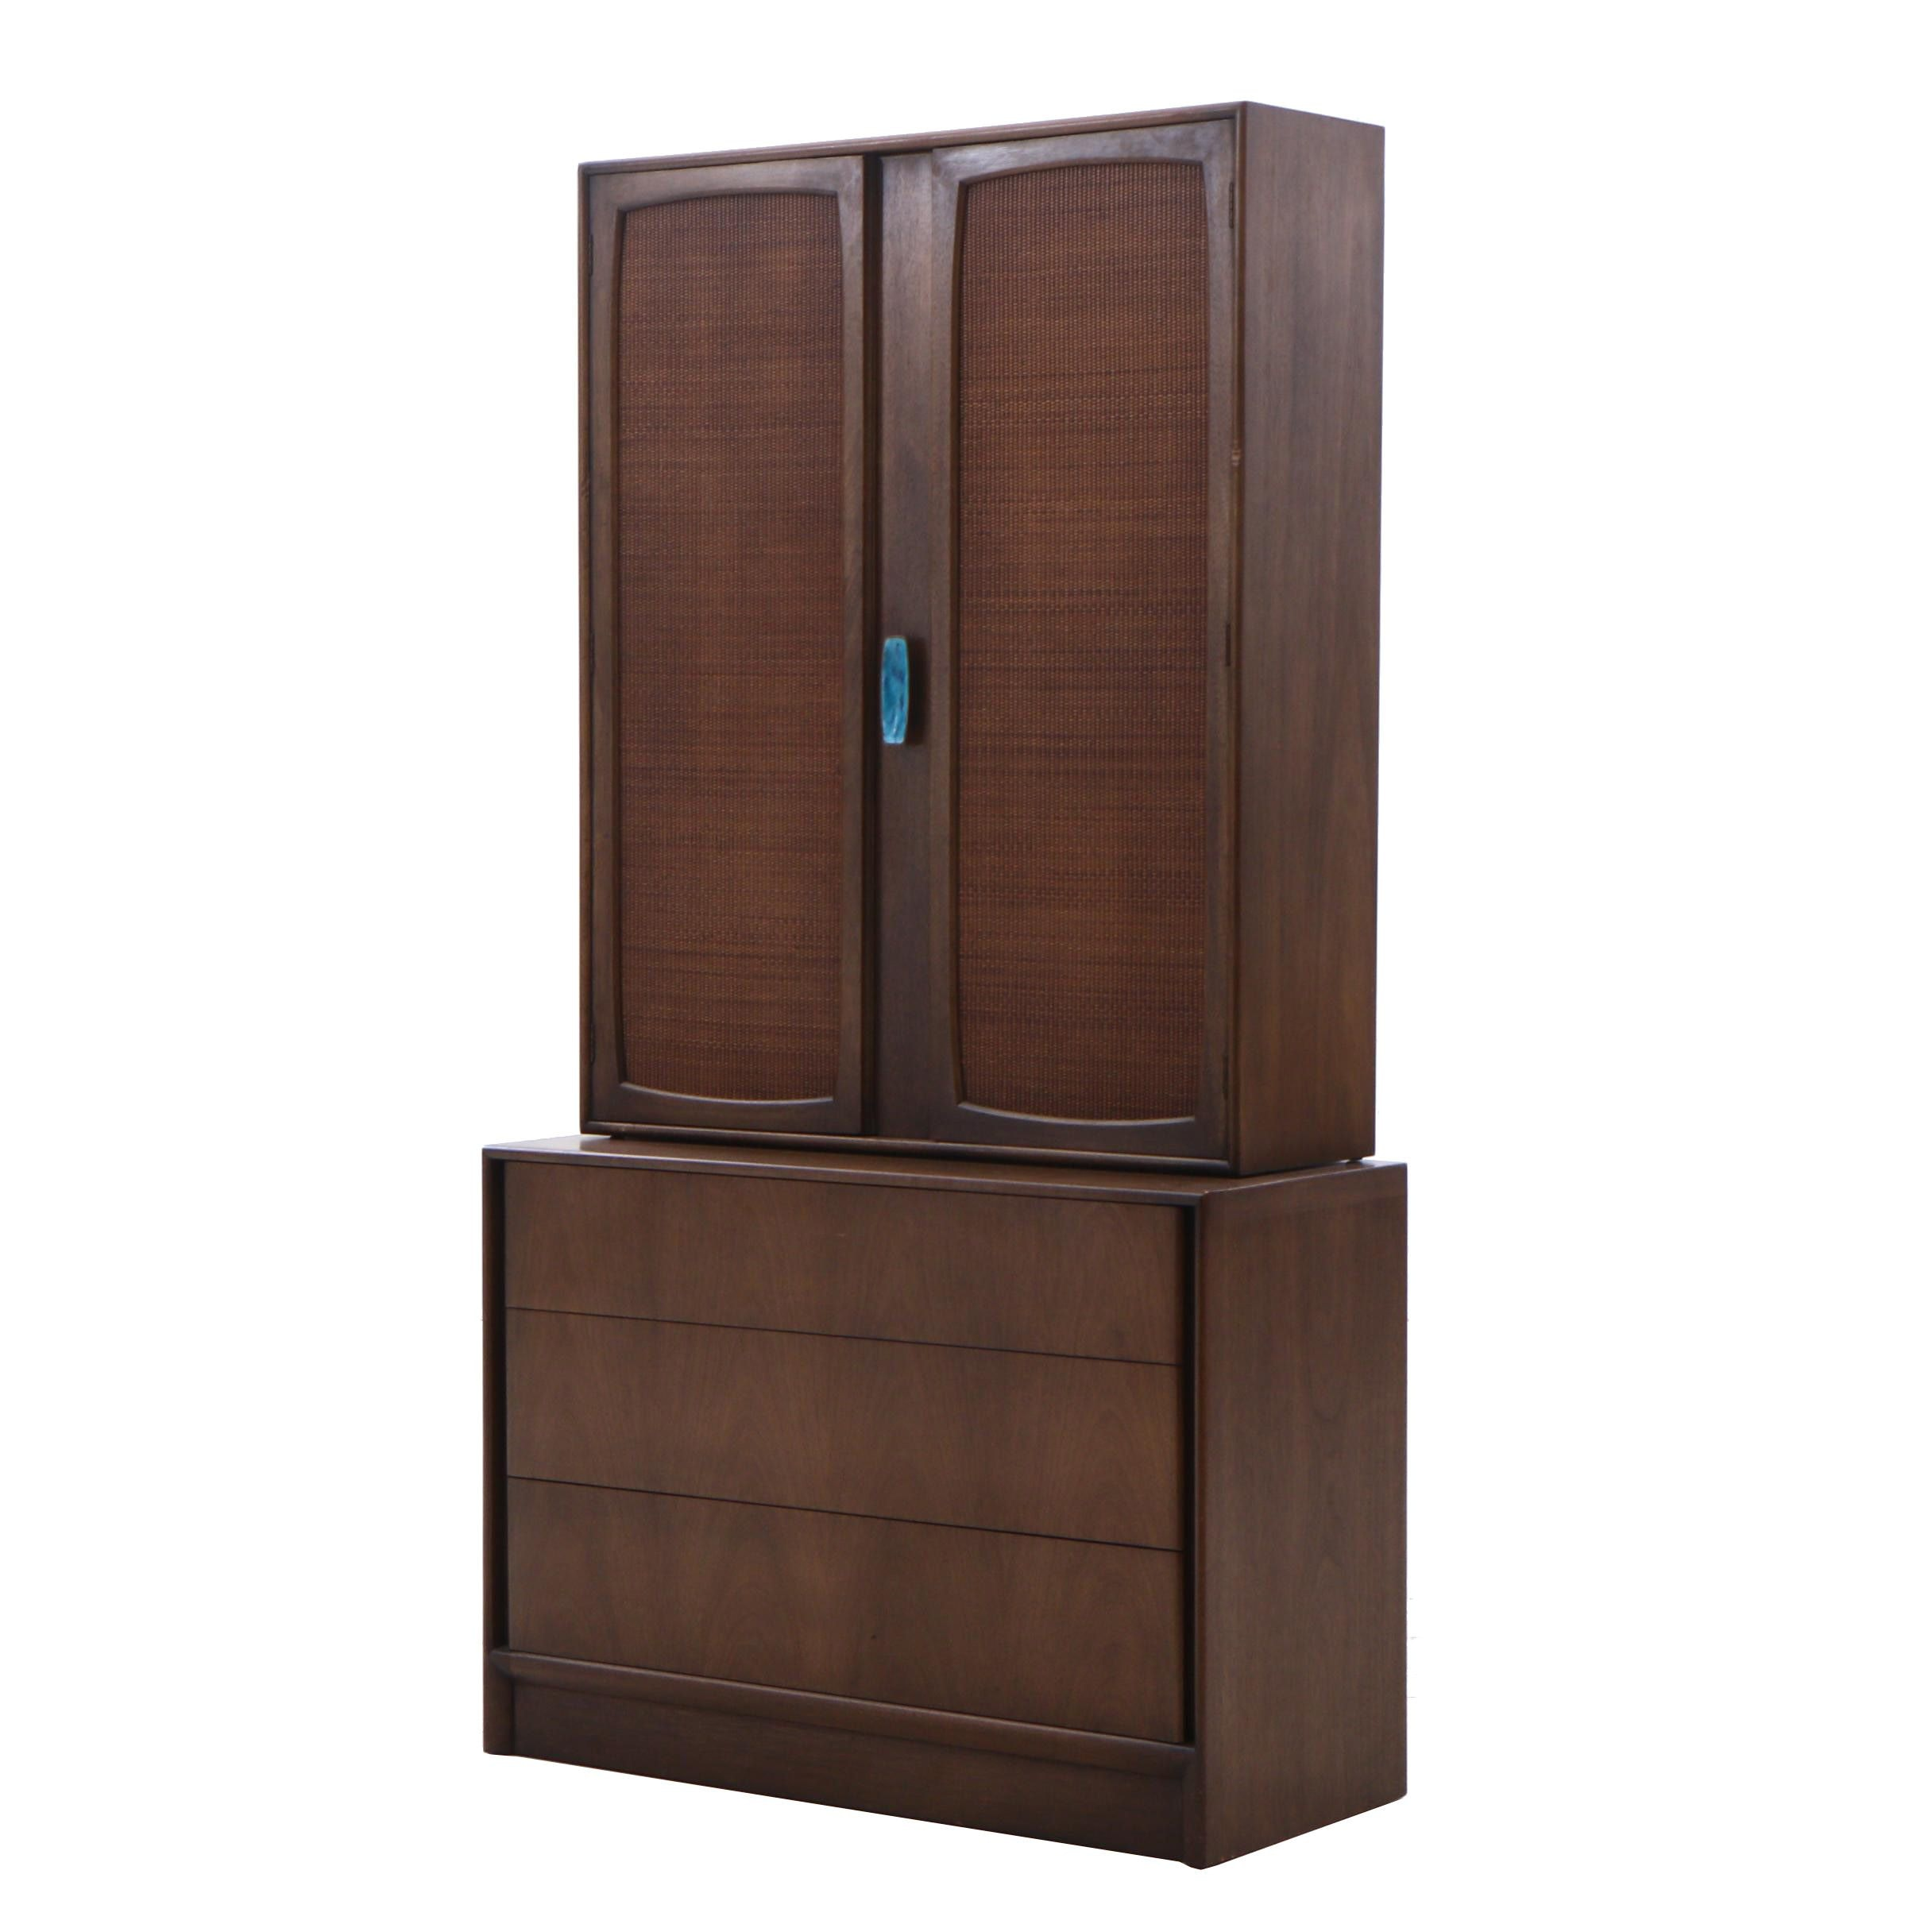 Mount Airy Furniture Mid Century Modern Walnut China Cabinet